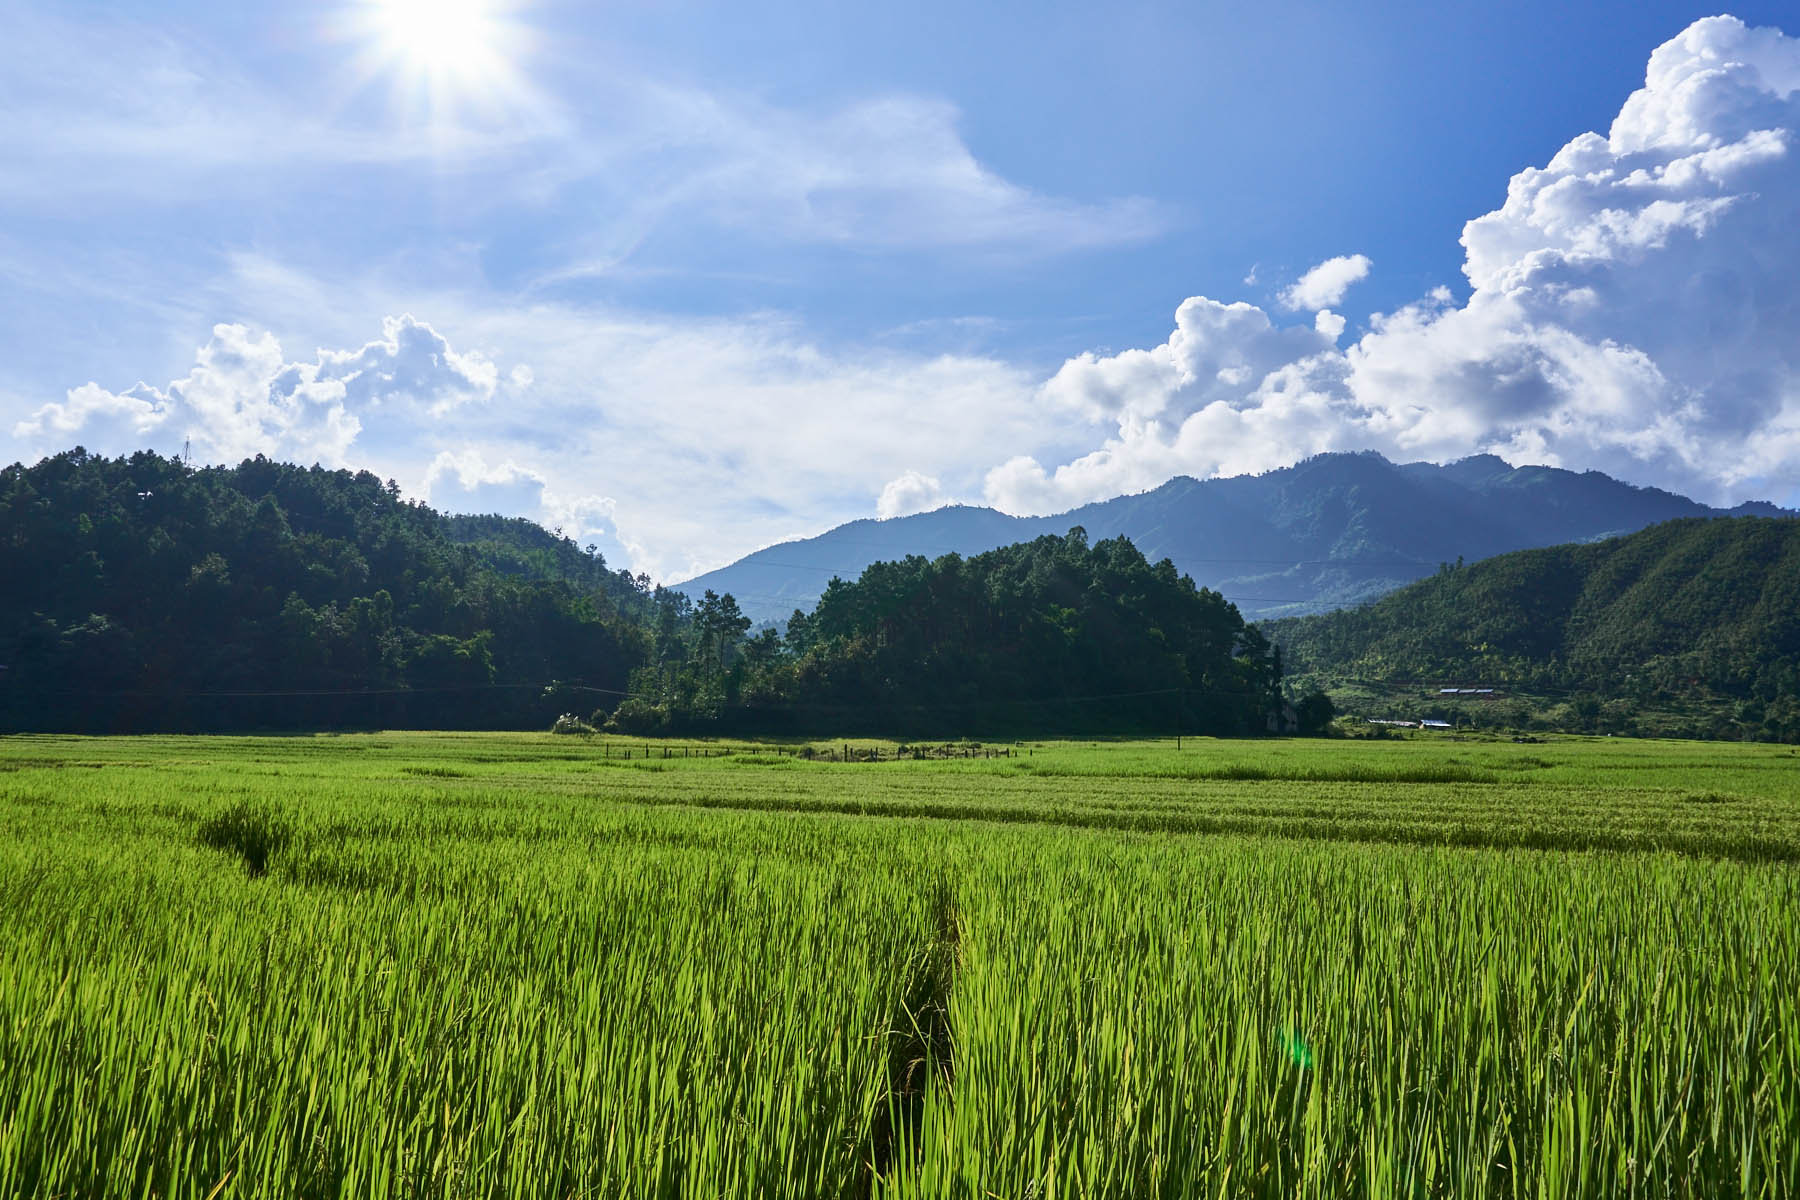 Sun over the rice fields and hills